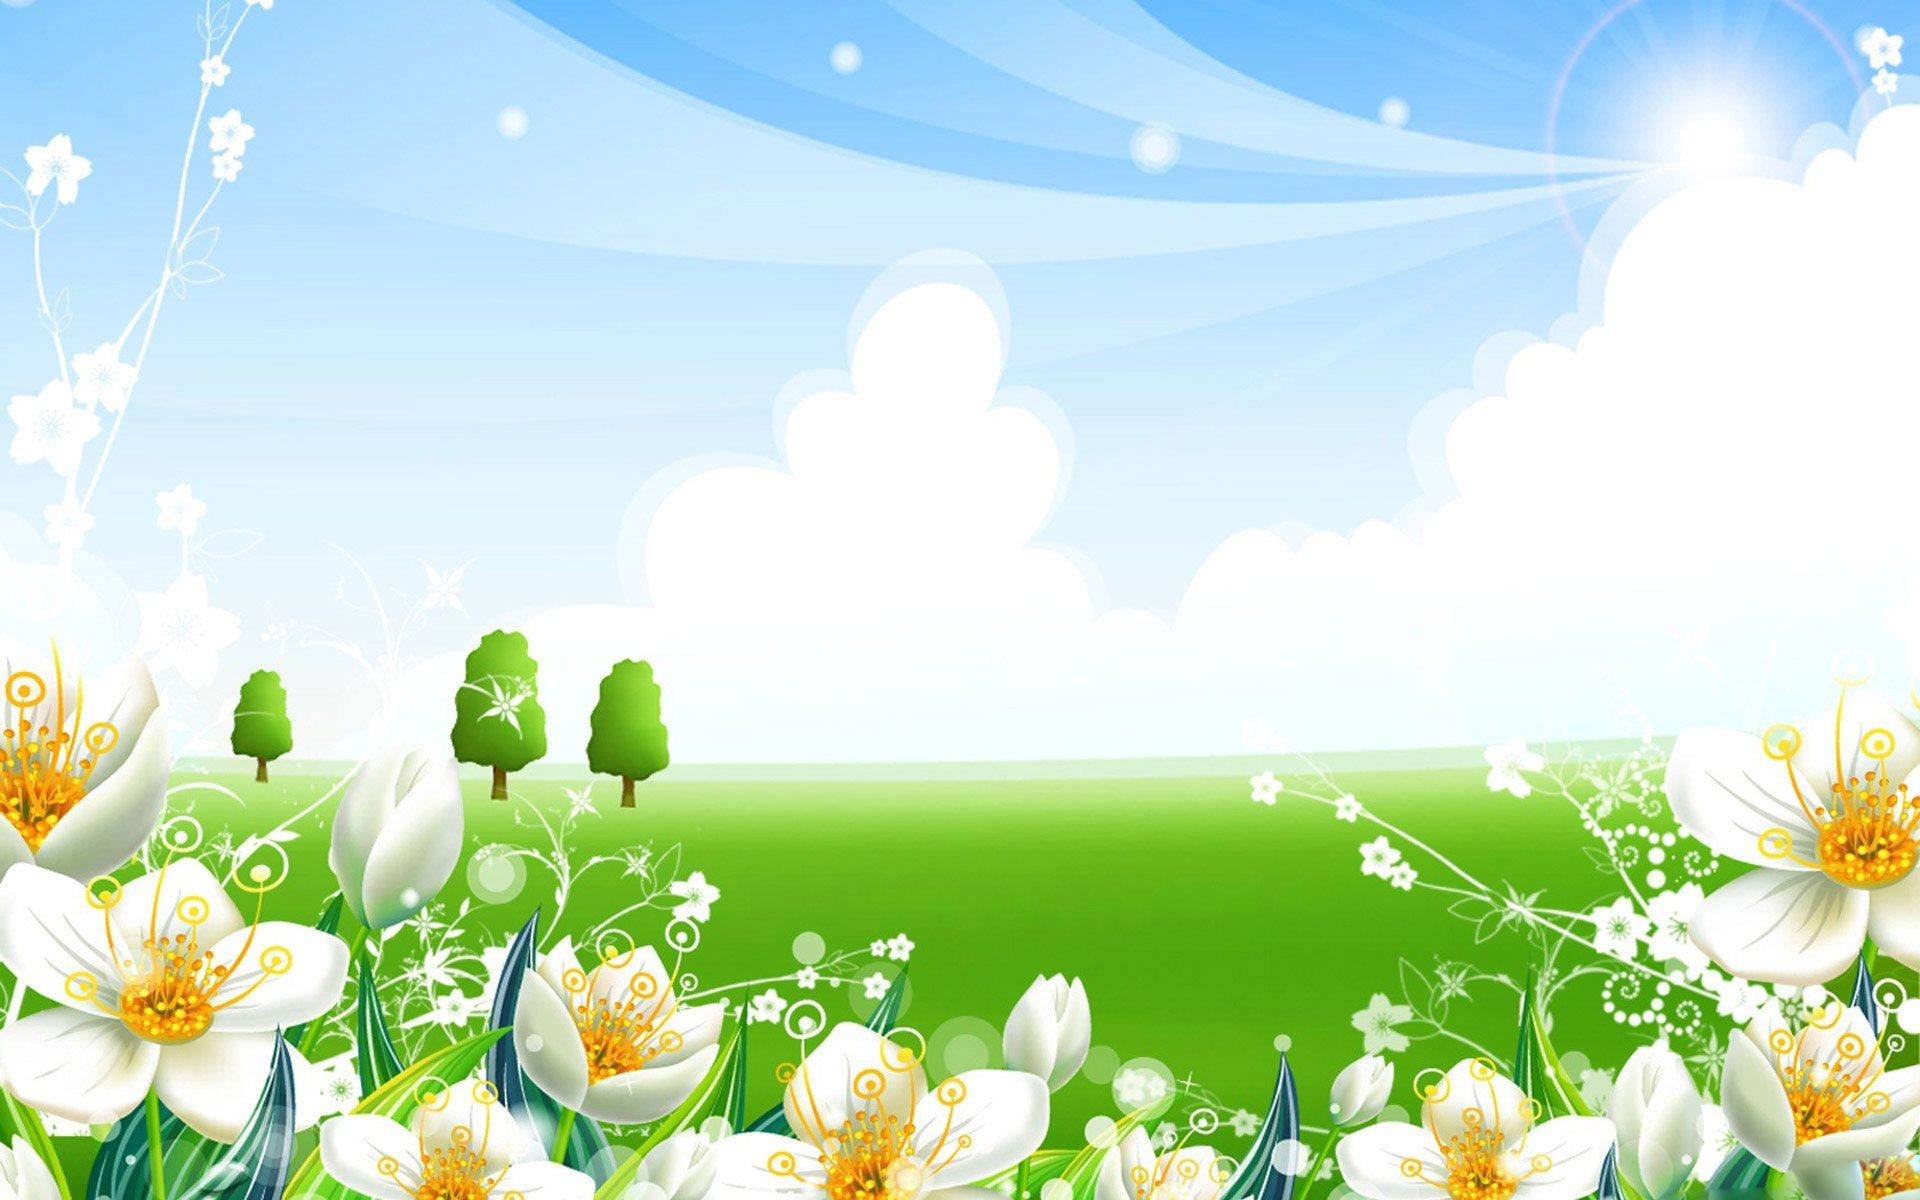 Res: 1920x1200, Blue and green summer theme HD wallpaper in high resolution